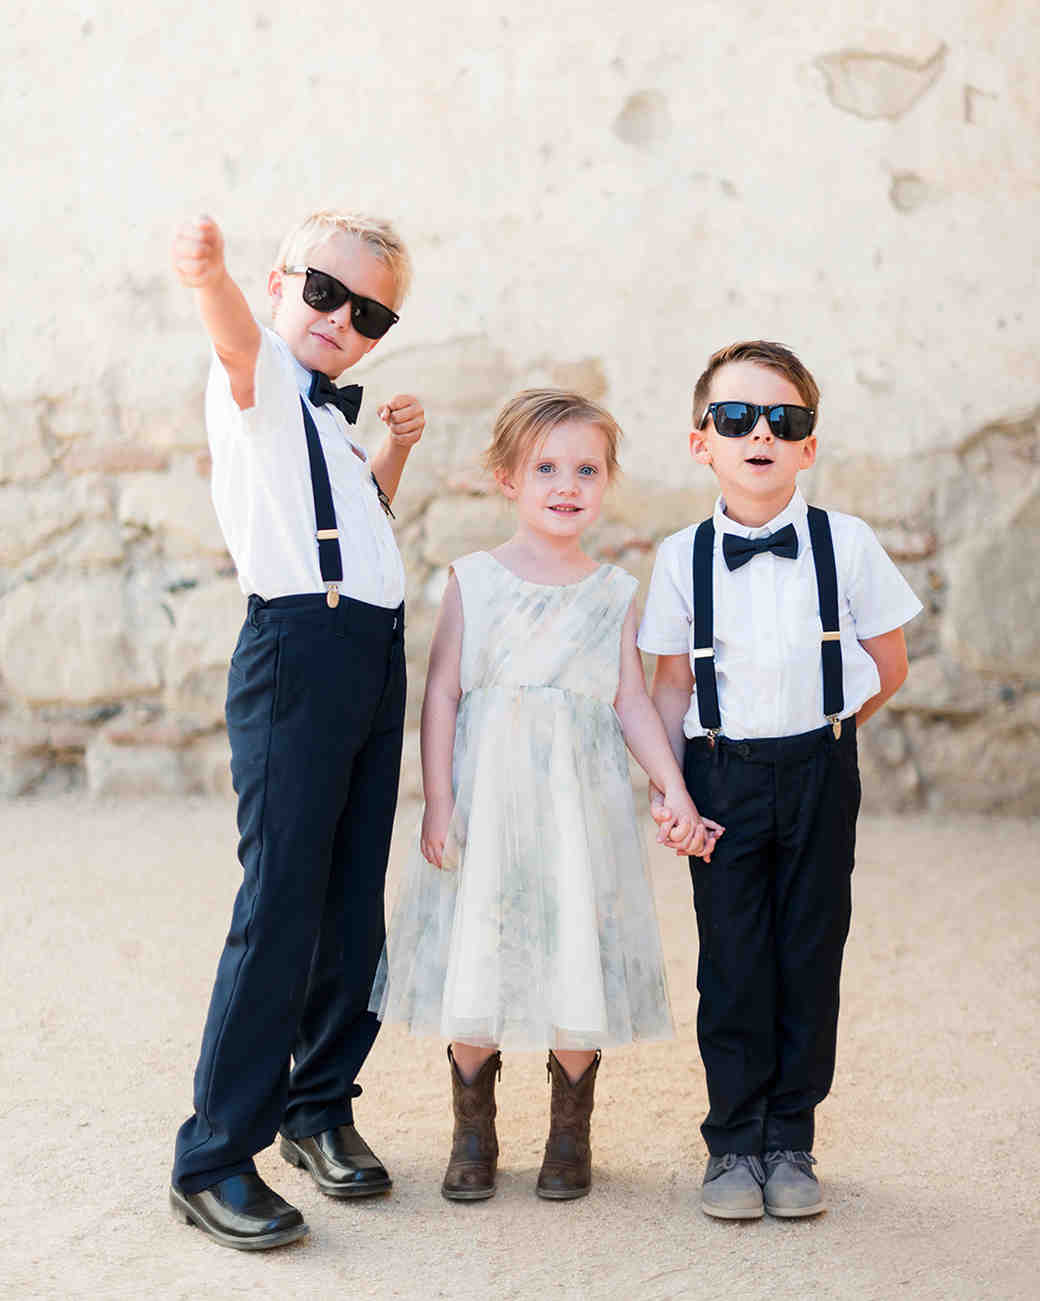 ring bearer sunglasses cool kids